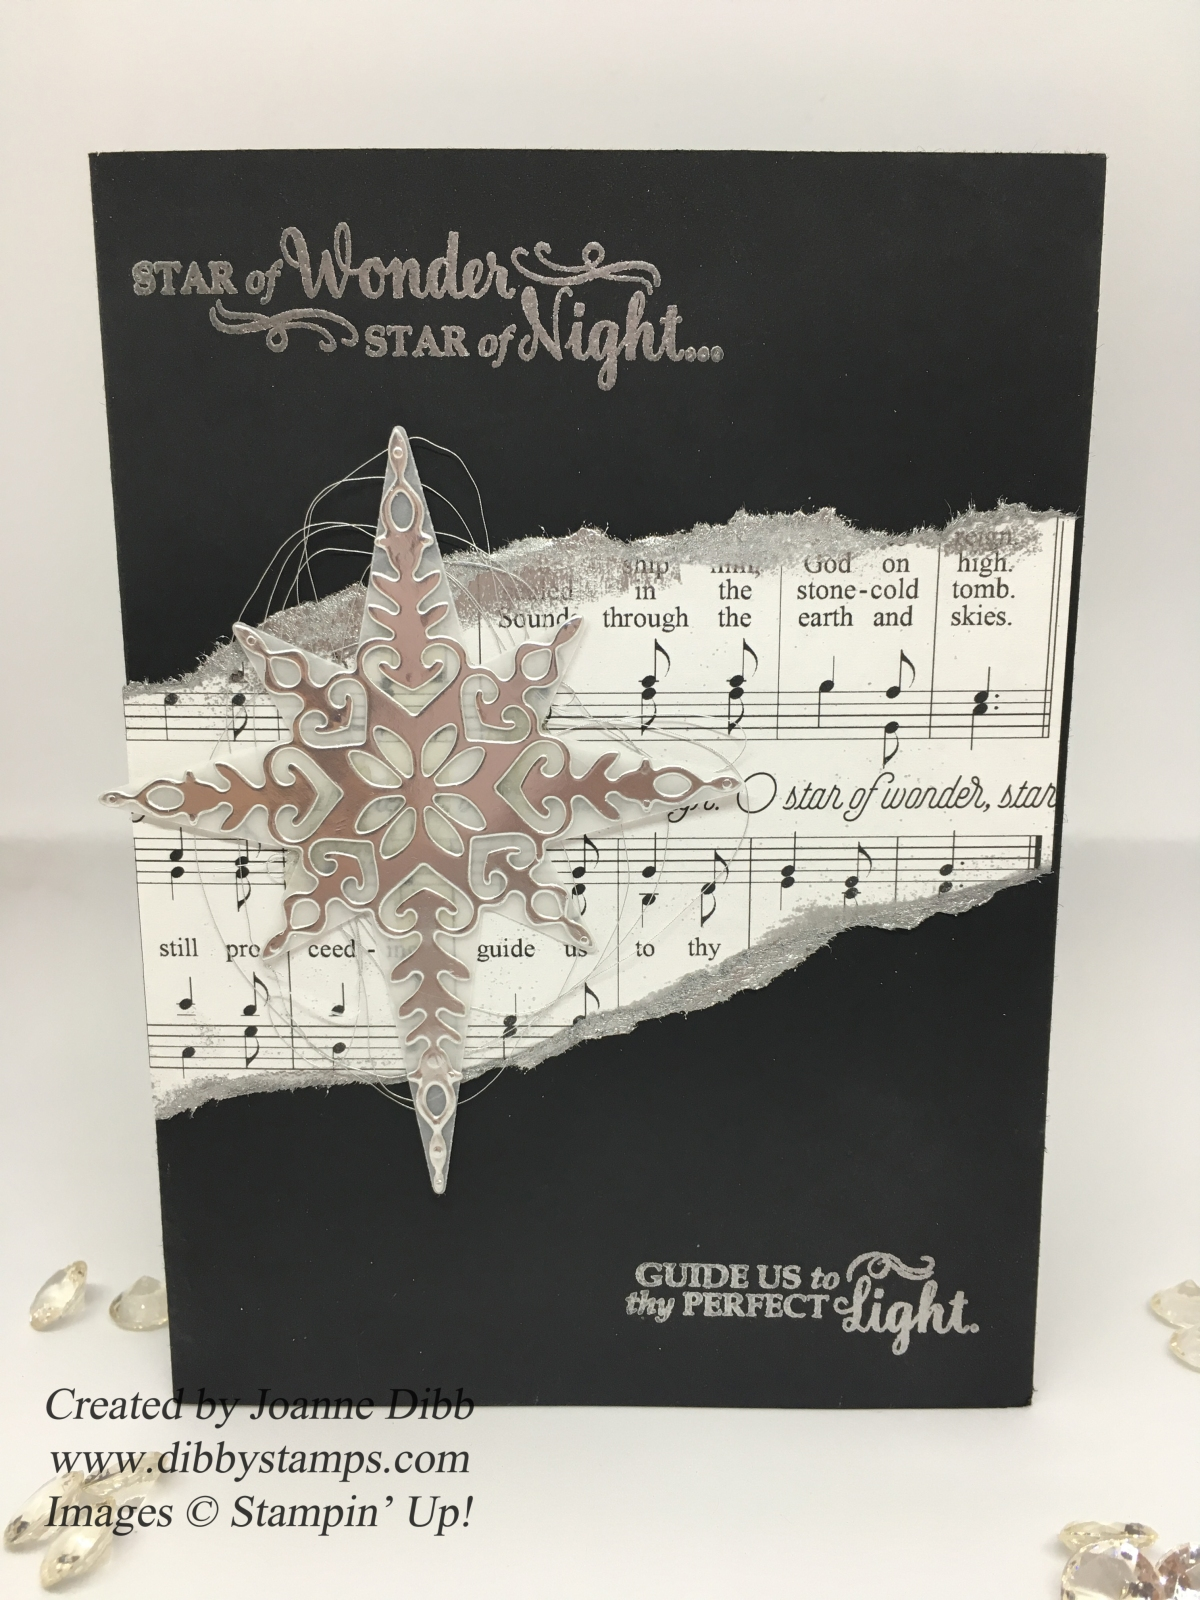 Star of Wonder, Star of Night Christmas Card – Dibby Stamps